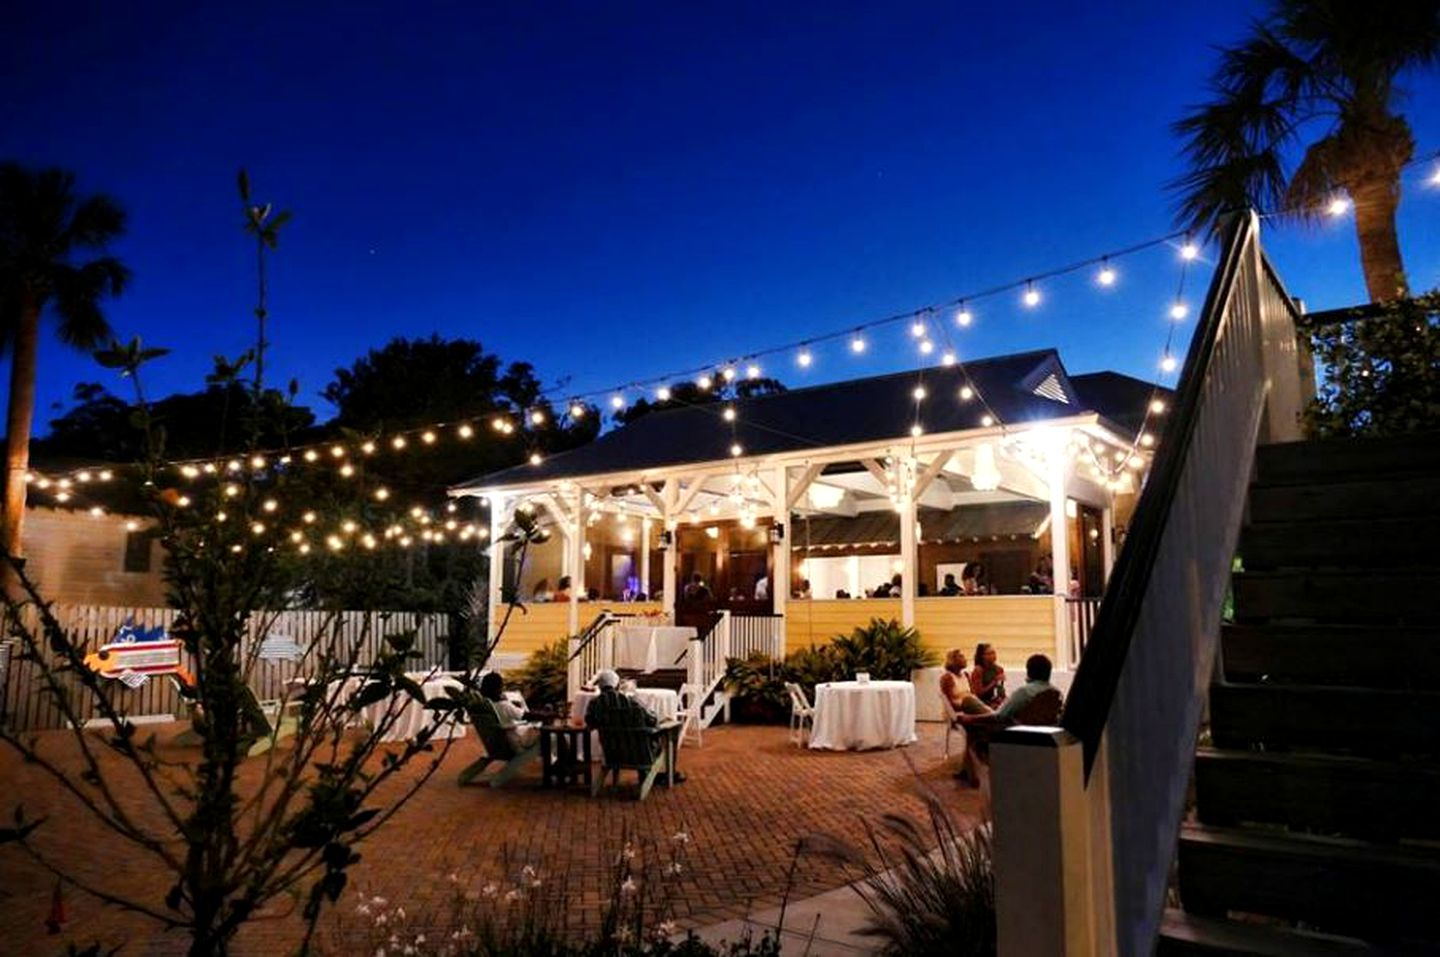 Outdoor patio at night with couples seated at tables and string lights on overhead on Tybee Island.